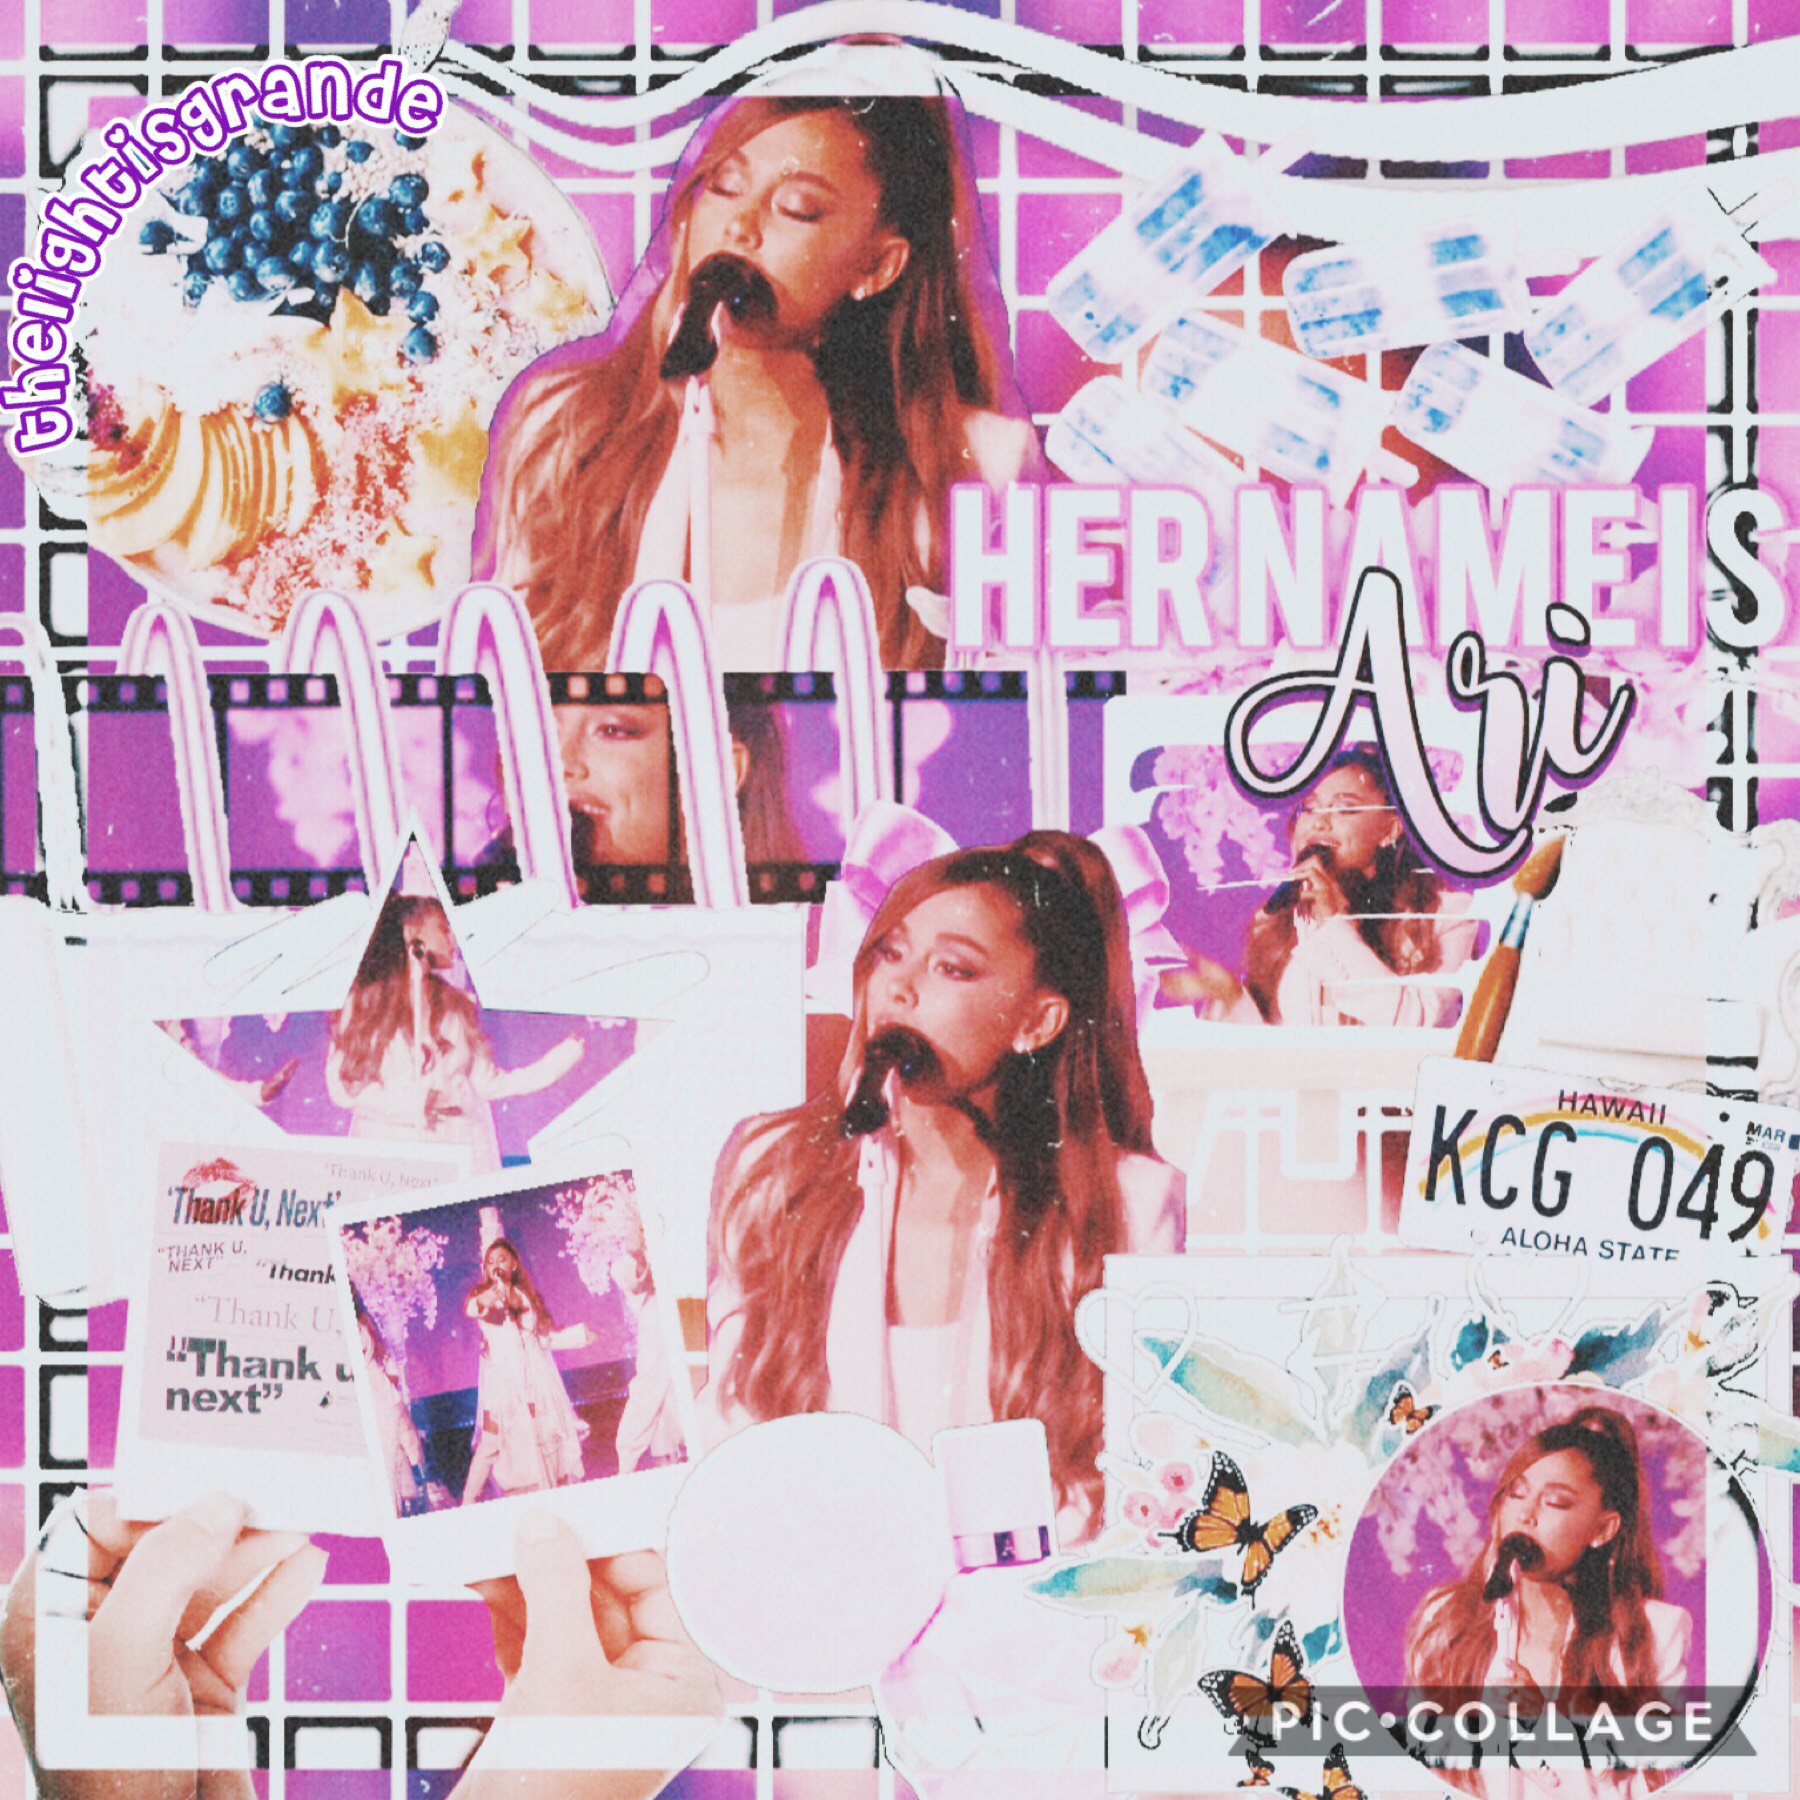 💜tap💜 💫I don't like this but I need to post😂Shoutout to @ellasediting SHE'S BACK!!💗🌈qotd: what's ur favorite new emoji? aotd: the party one🥳🥳🥳😂